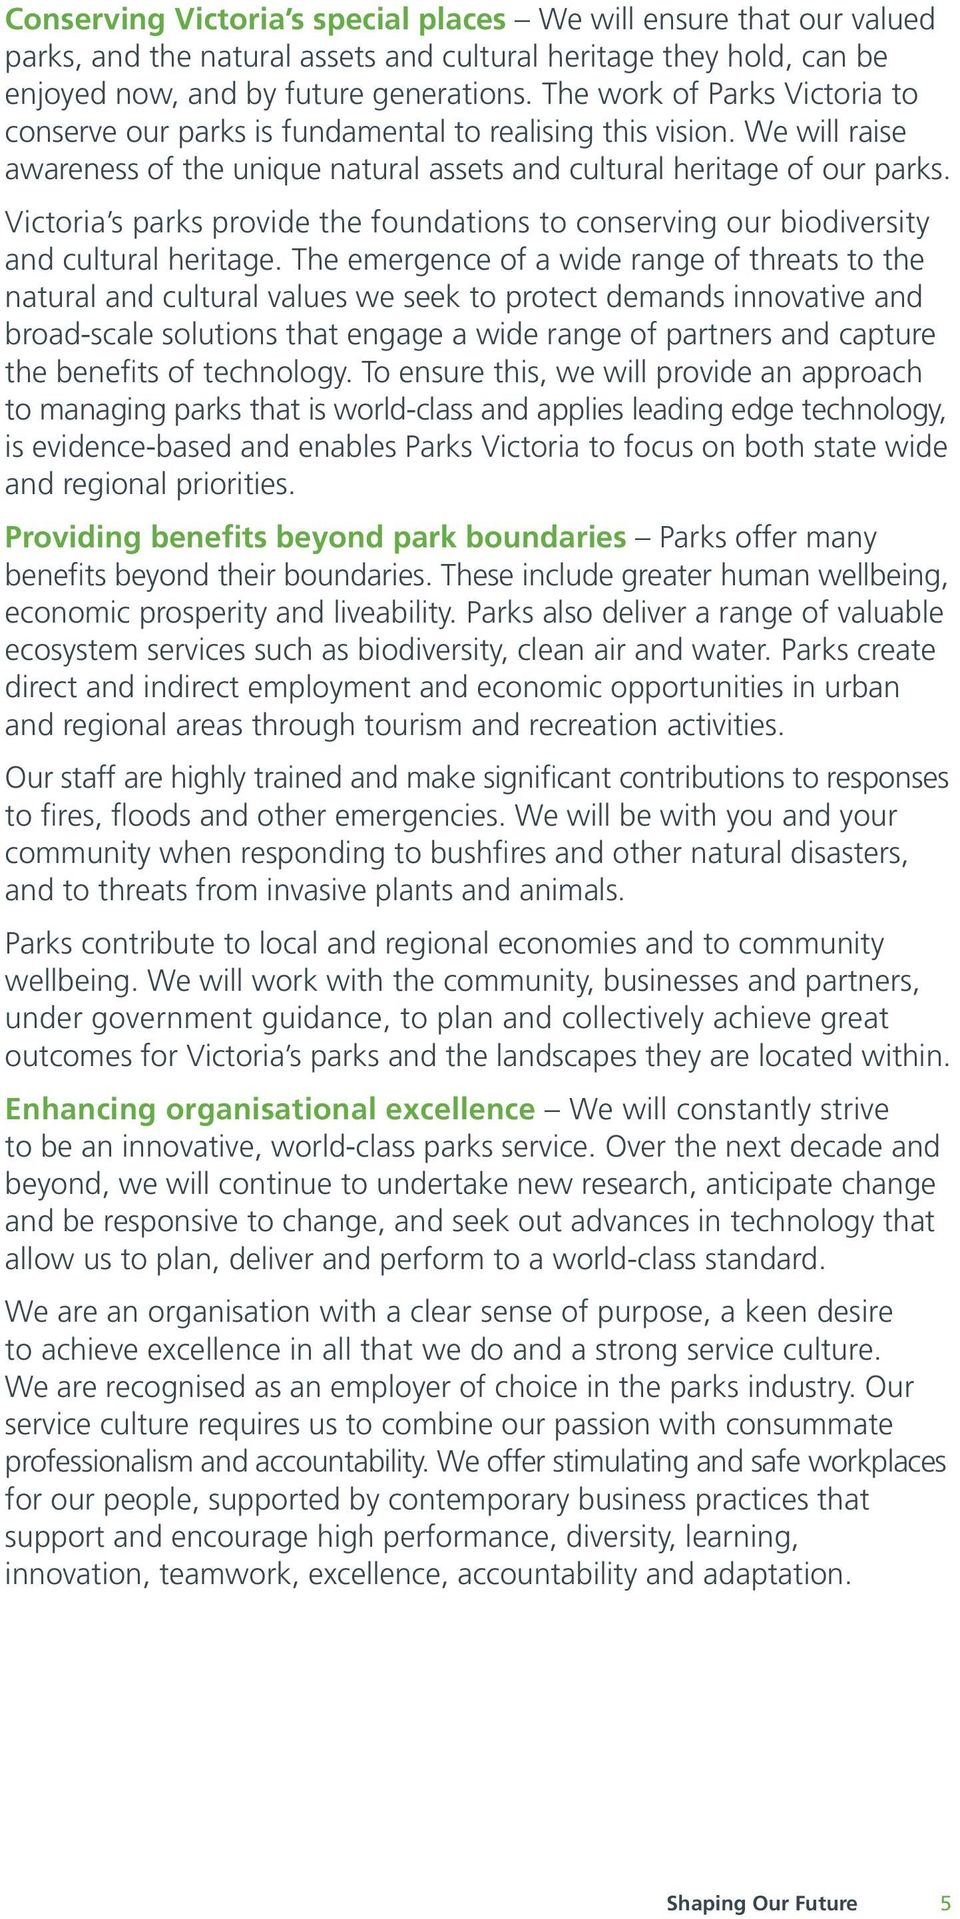 Victoria s parks provide the foundations to conserving our biodiversity and cultural heritage.